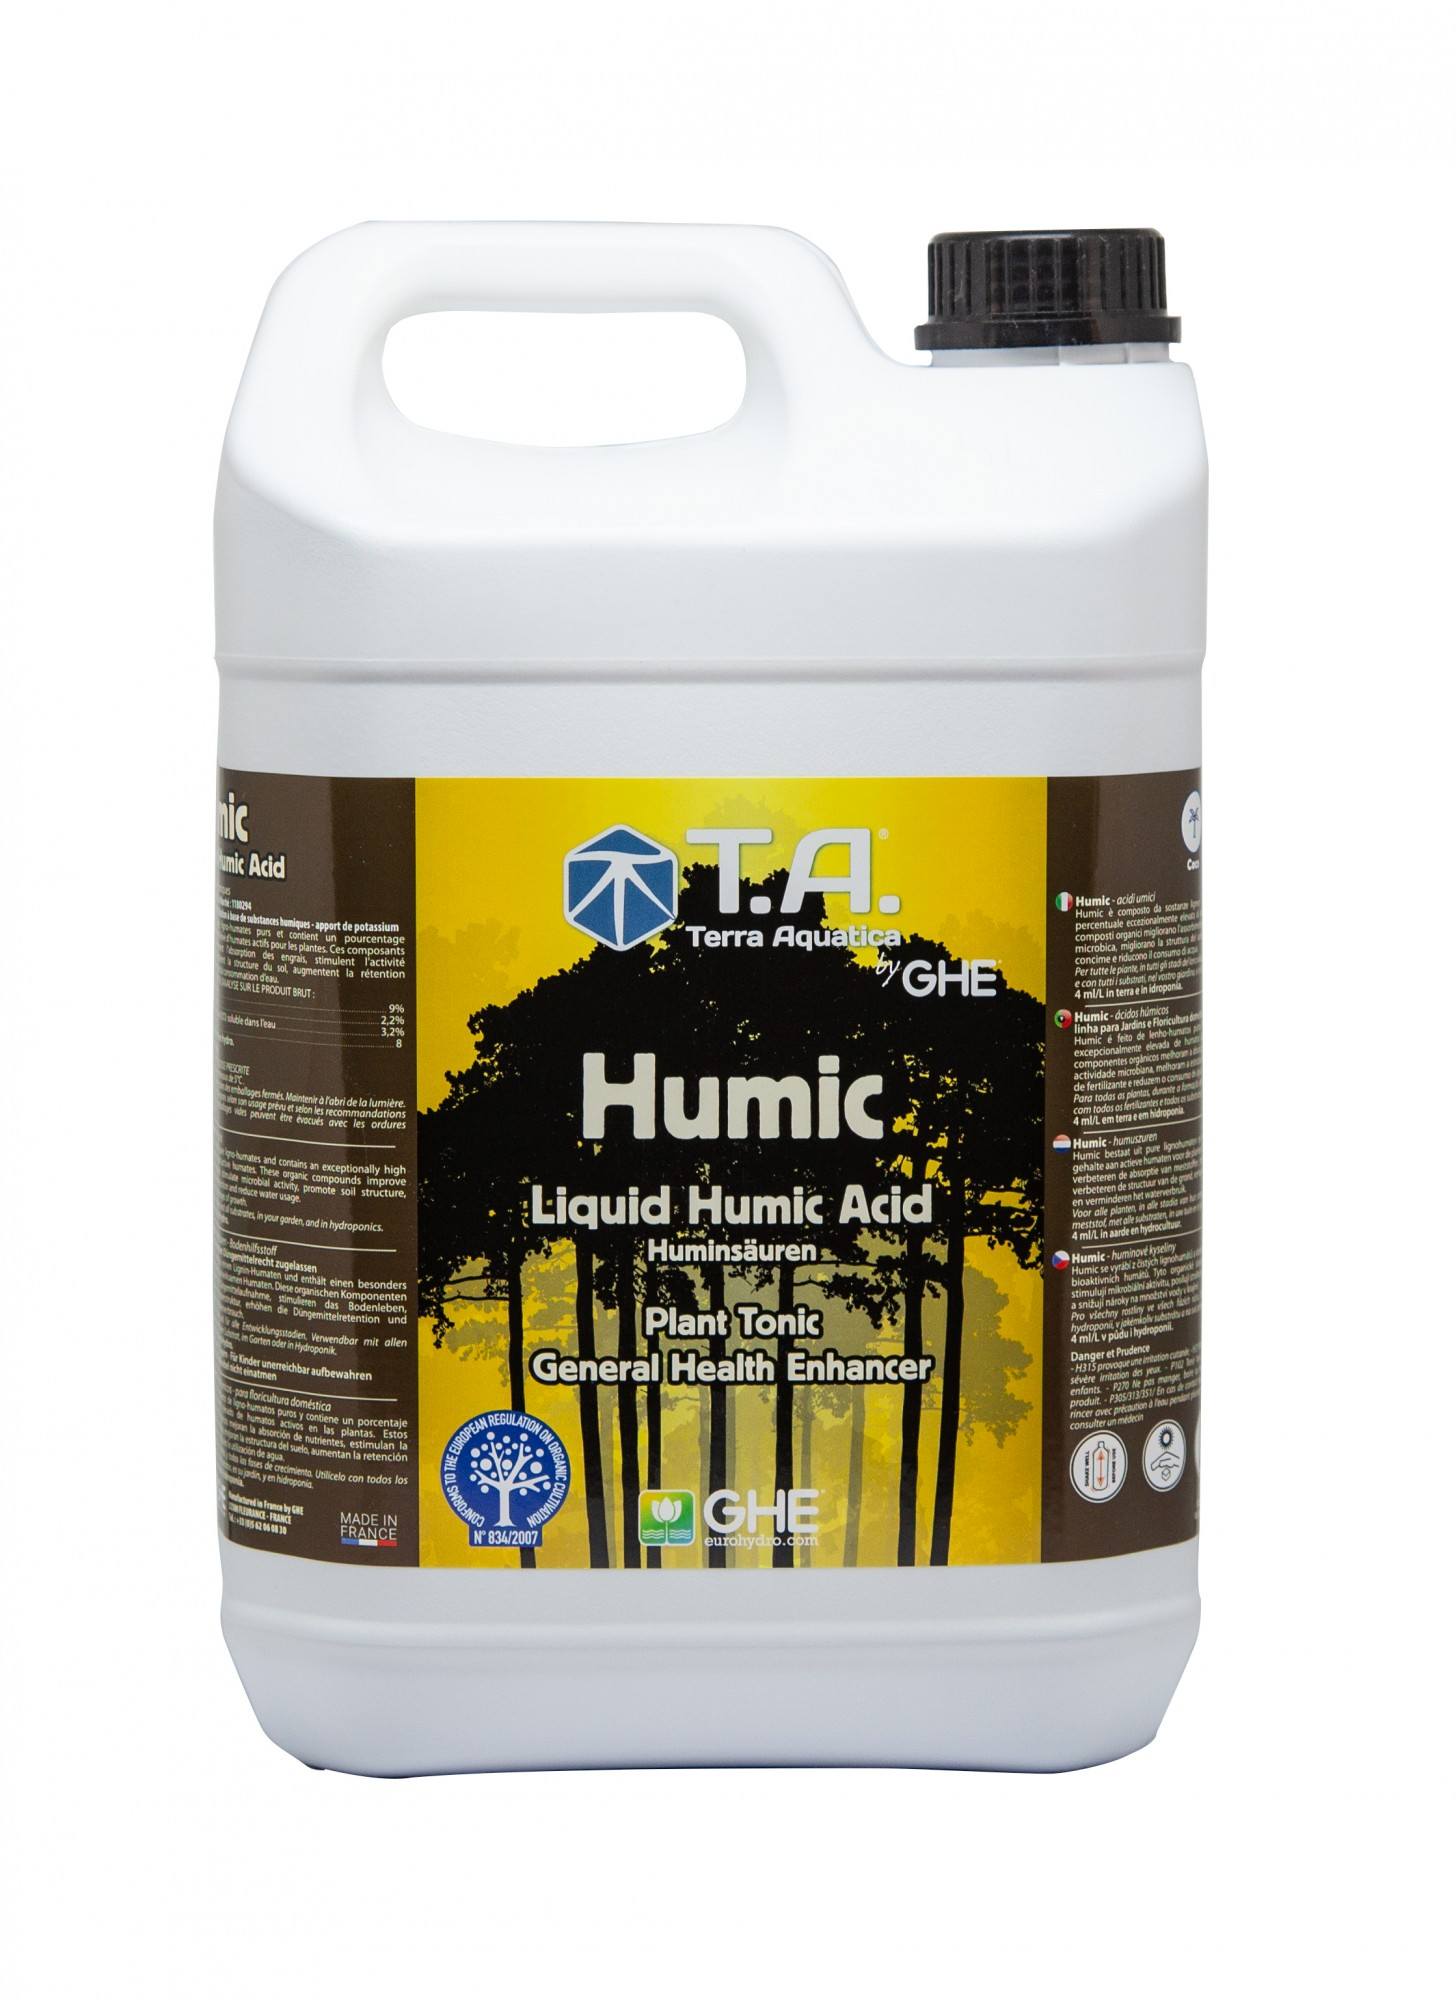 GHE GO Diamond Black 60L (Humic)